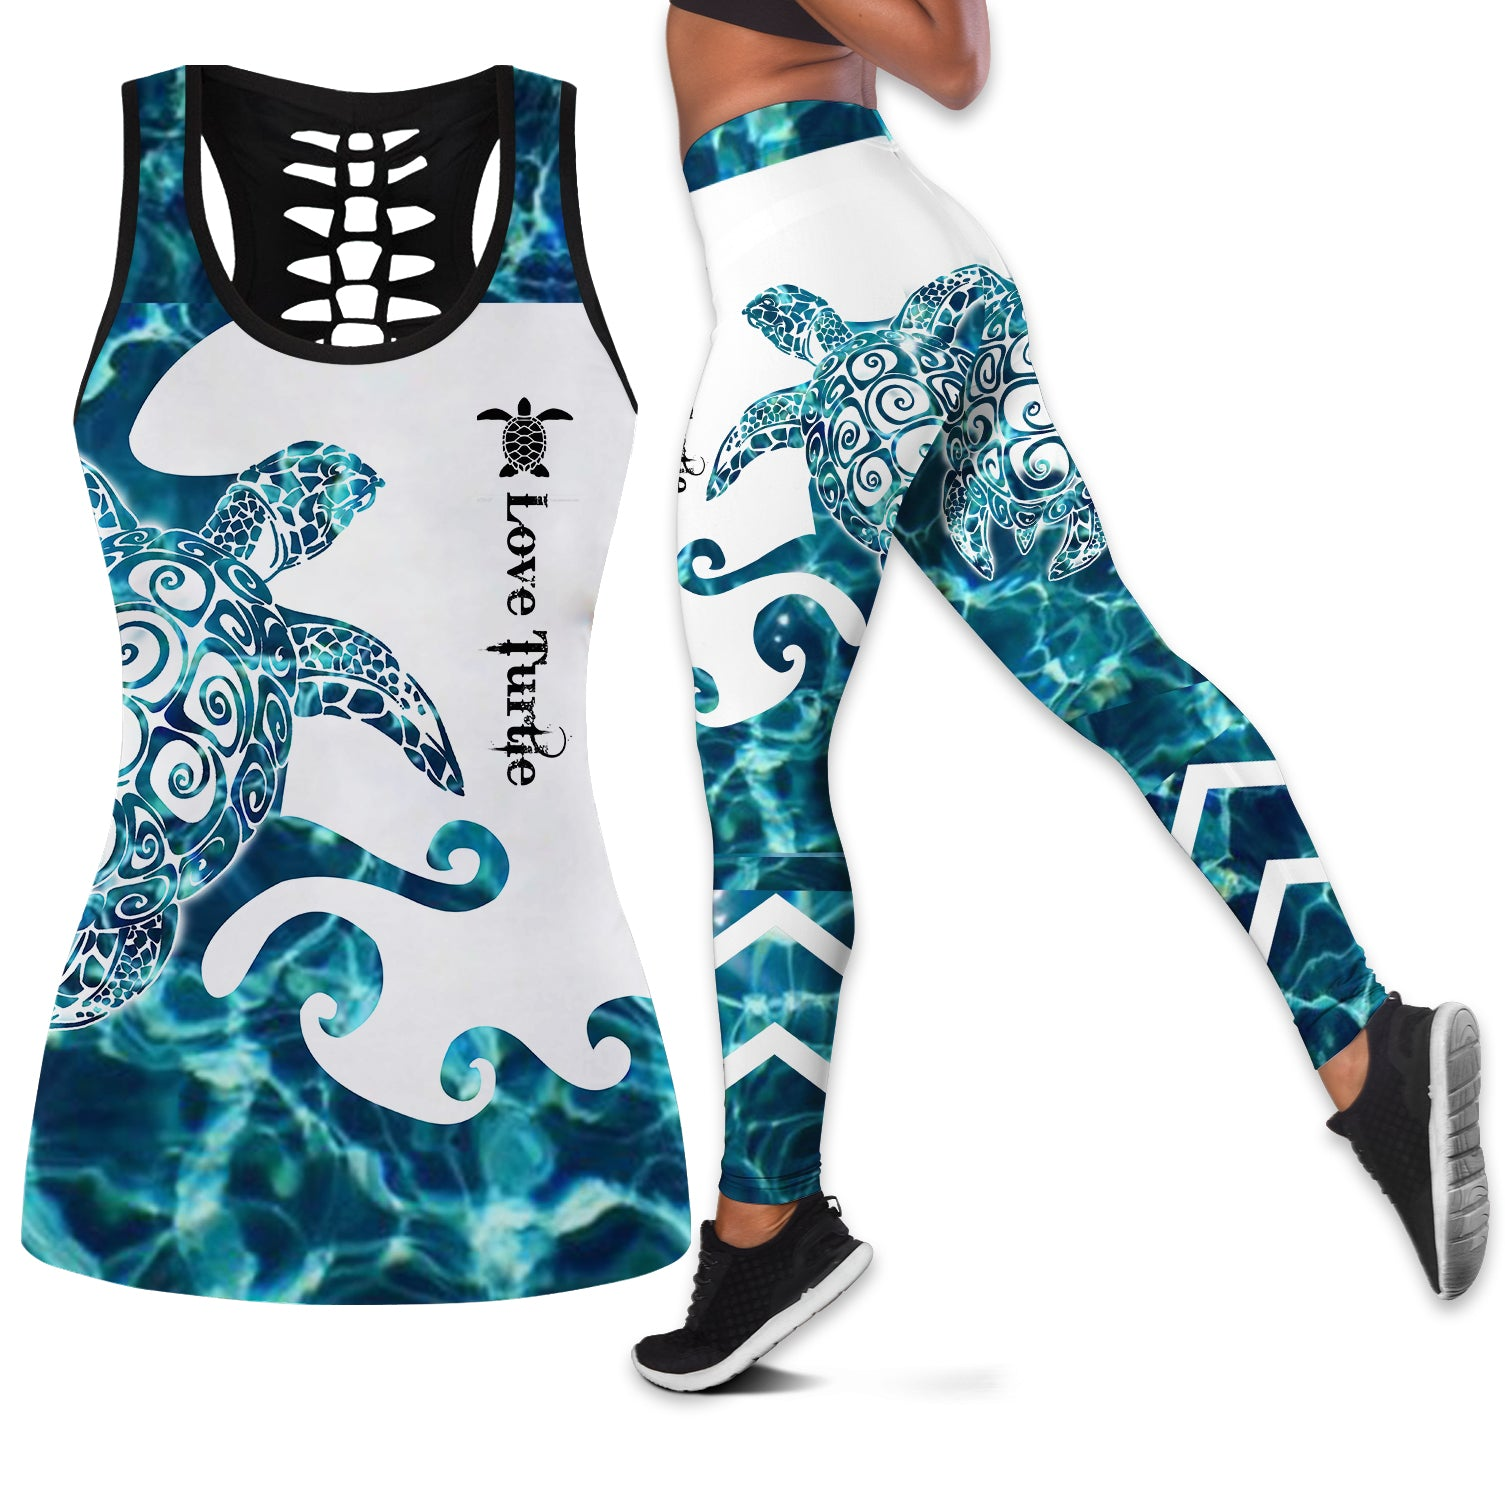 Sea Turtle Women Tank Top & Legging 04